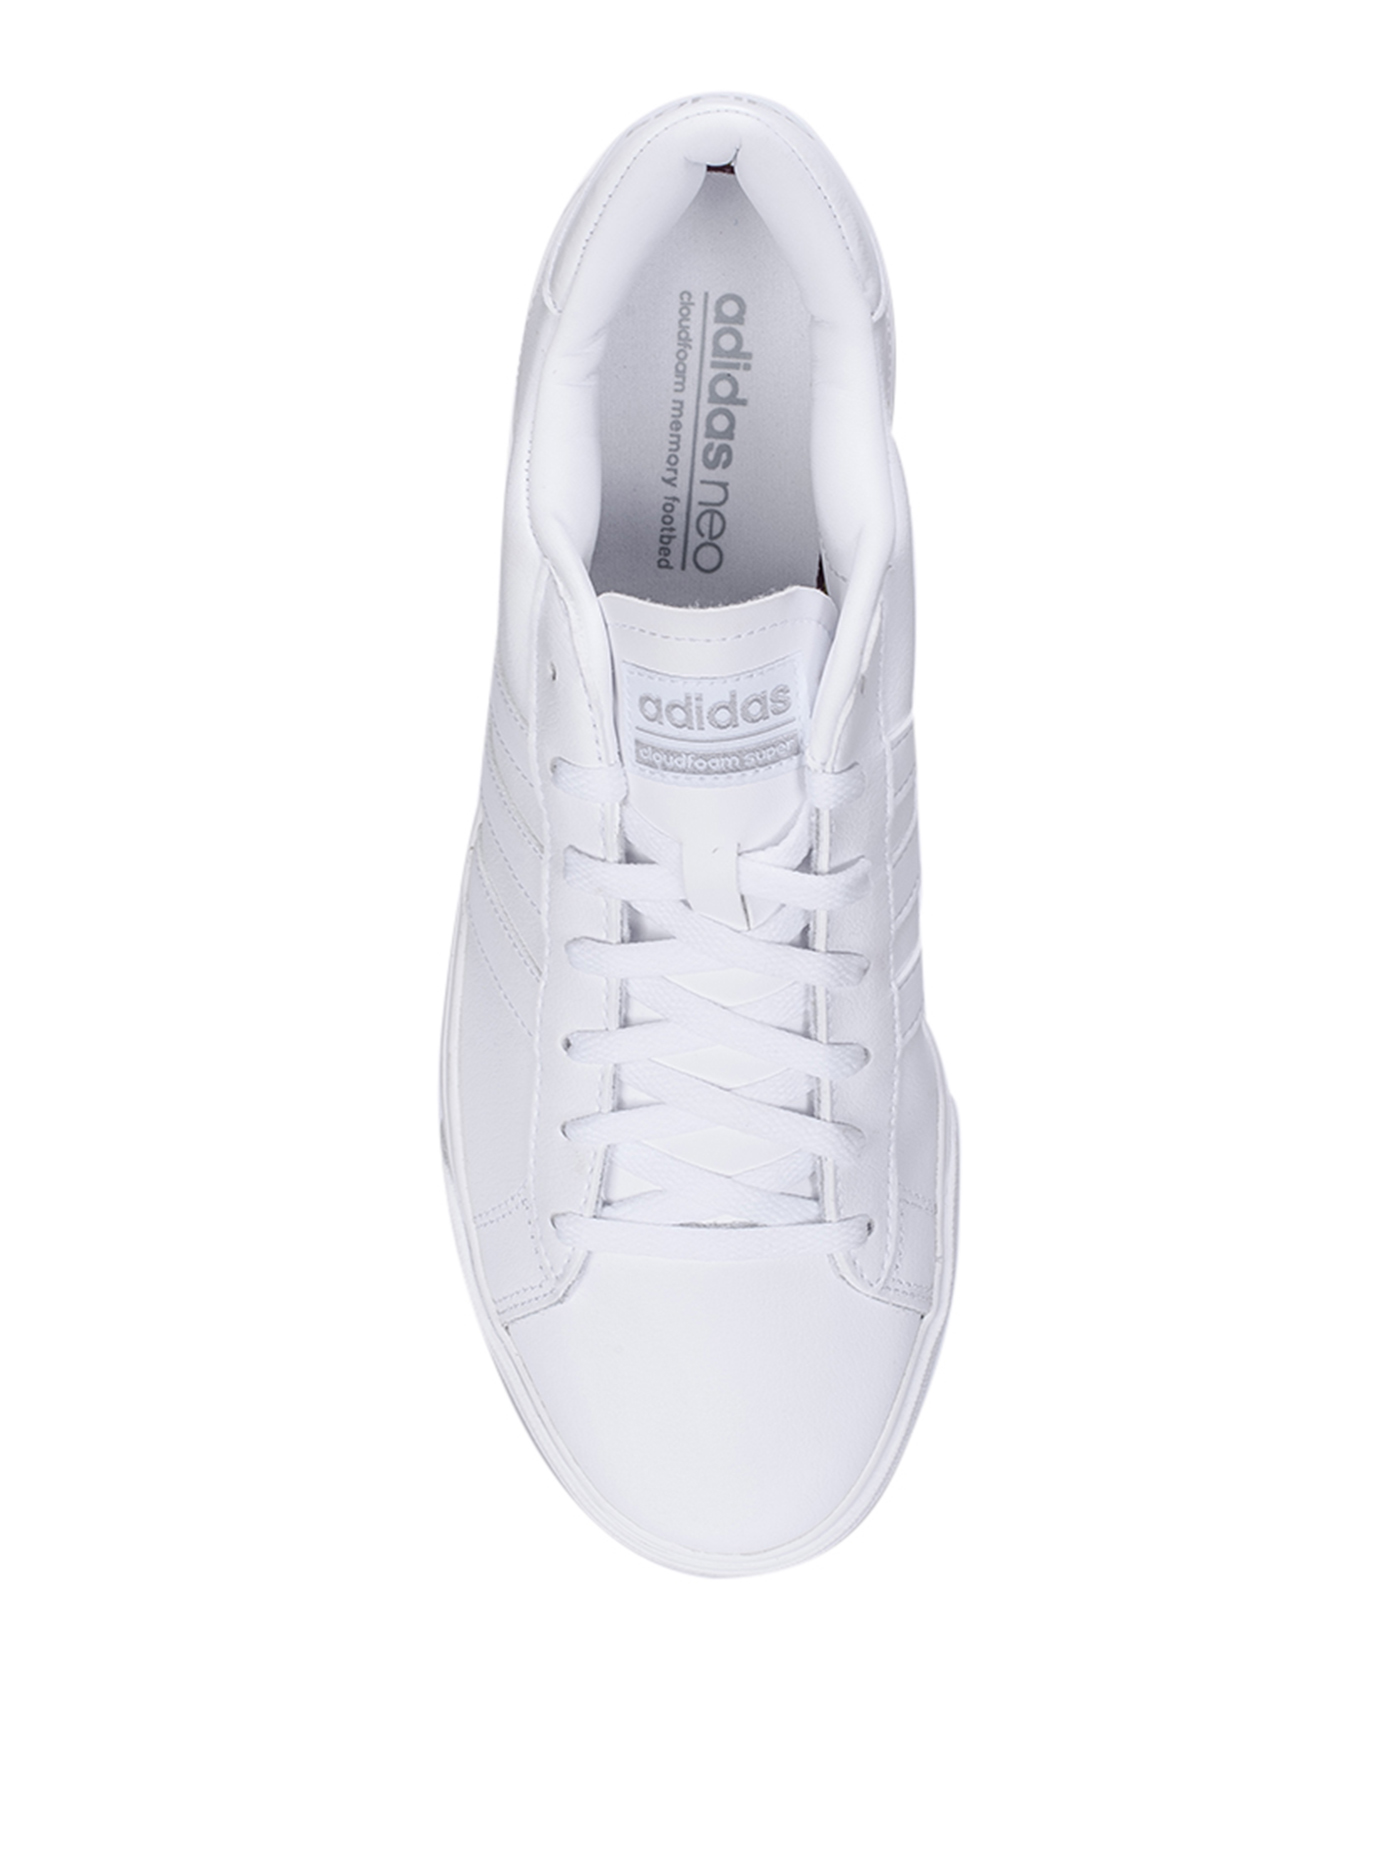 6c5b2574265 ADIDAS NEO Men s Casual Shoes Cloudfoam Super Daily AW3903 Size UK9 White